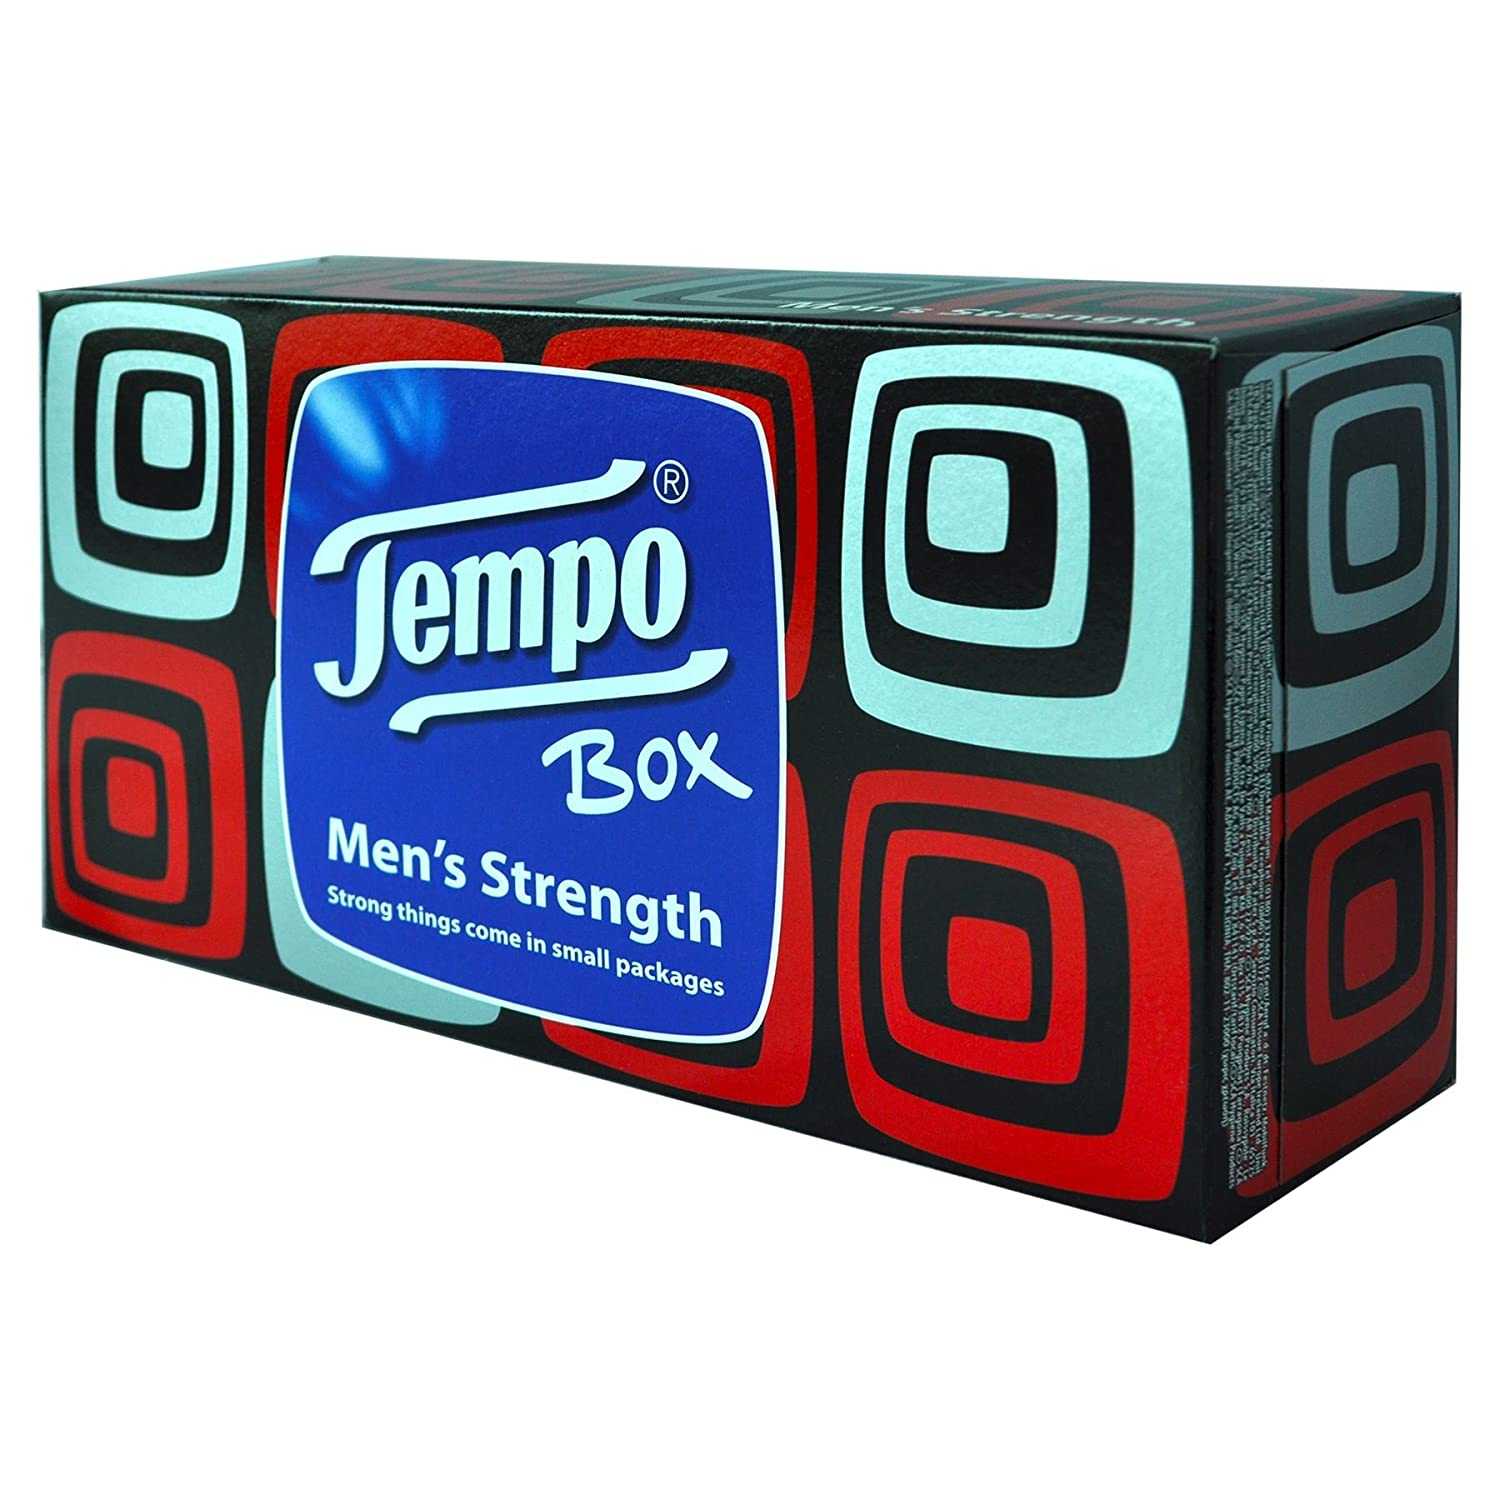 12 Pack x 1 Tempo Mens Strength Tissues